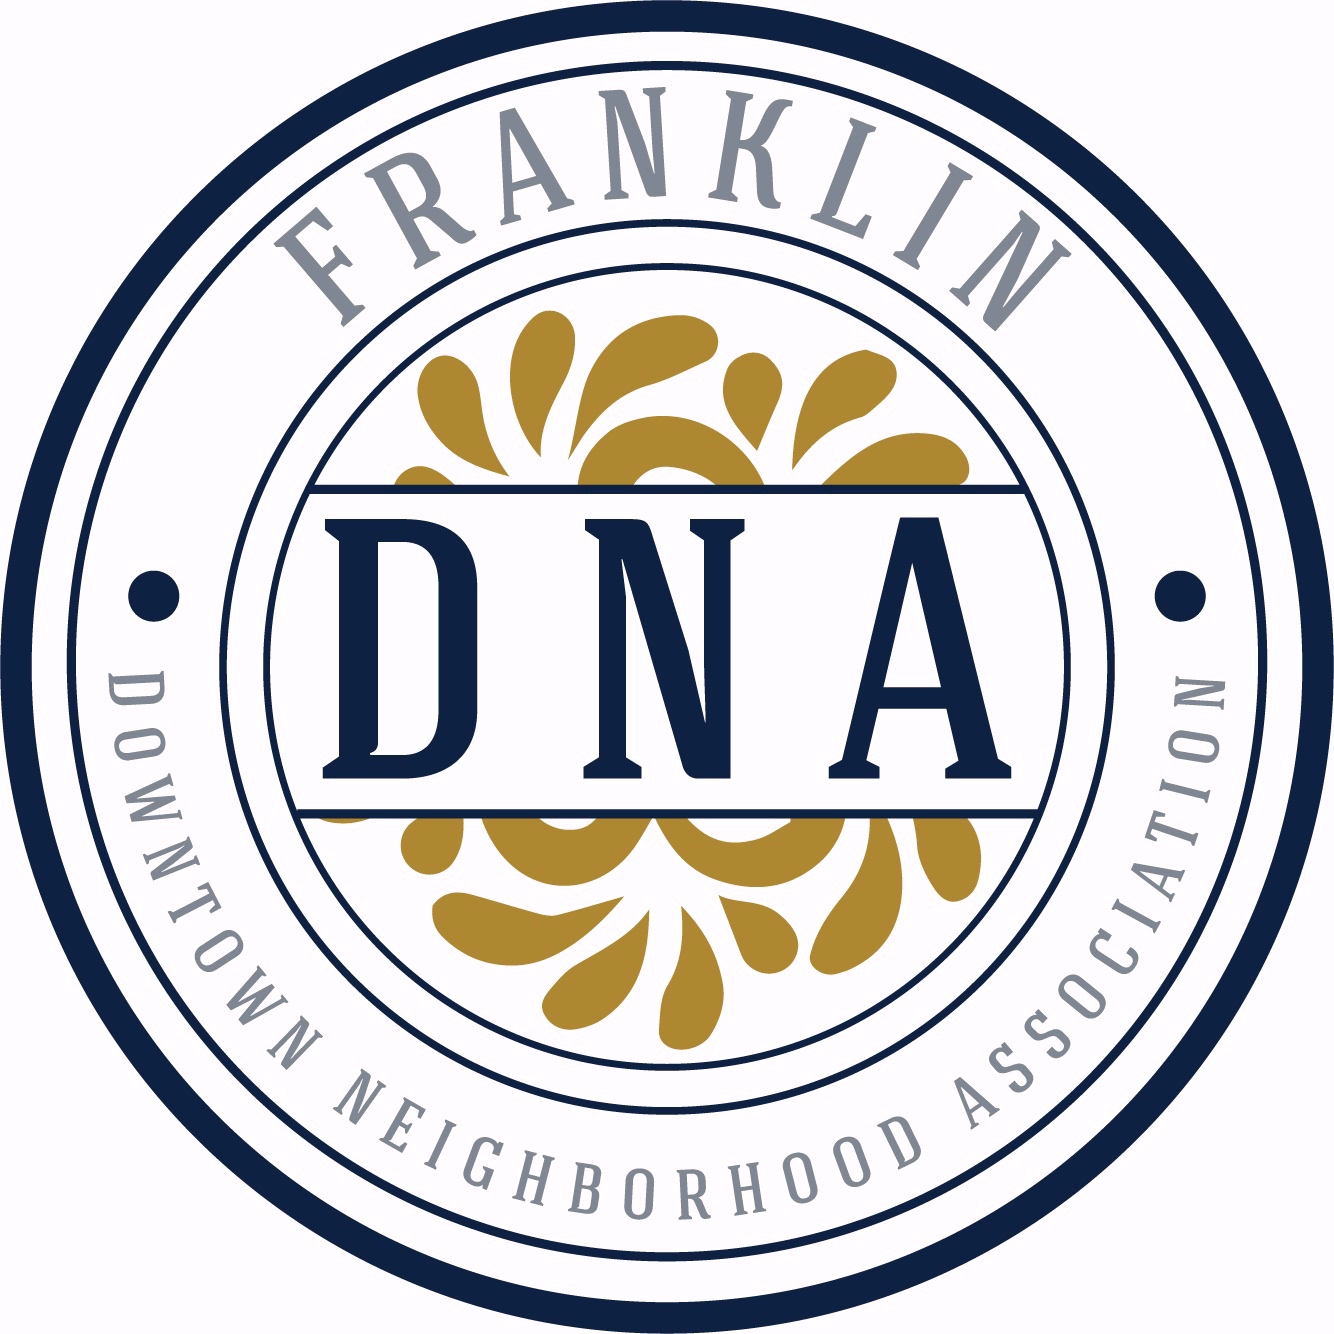 Franklin DNA